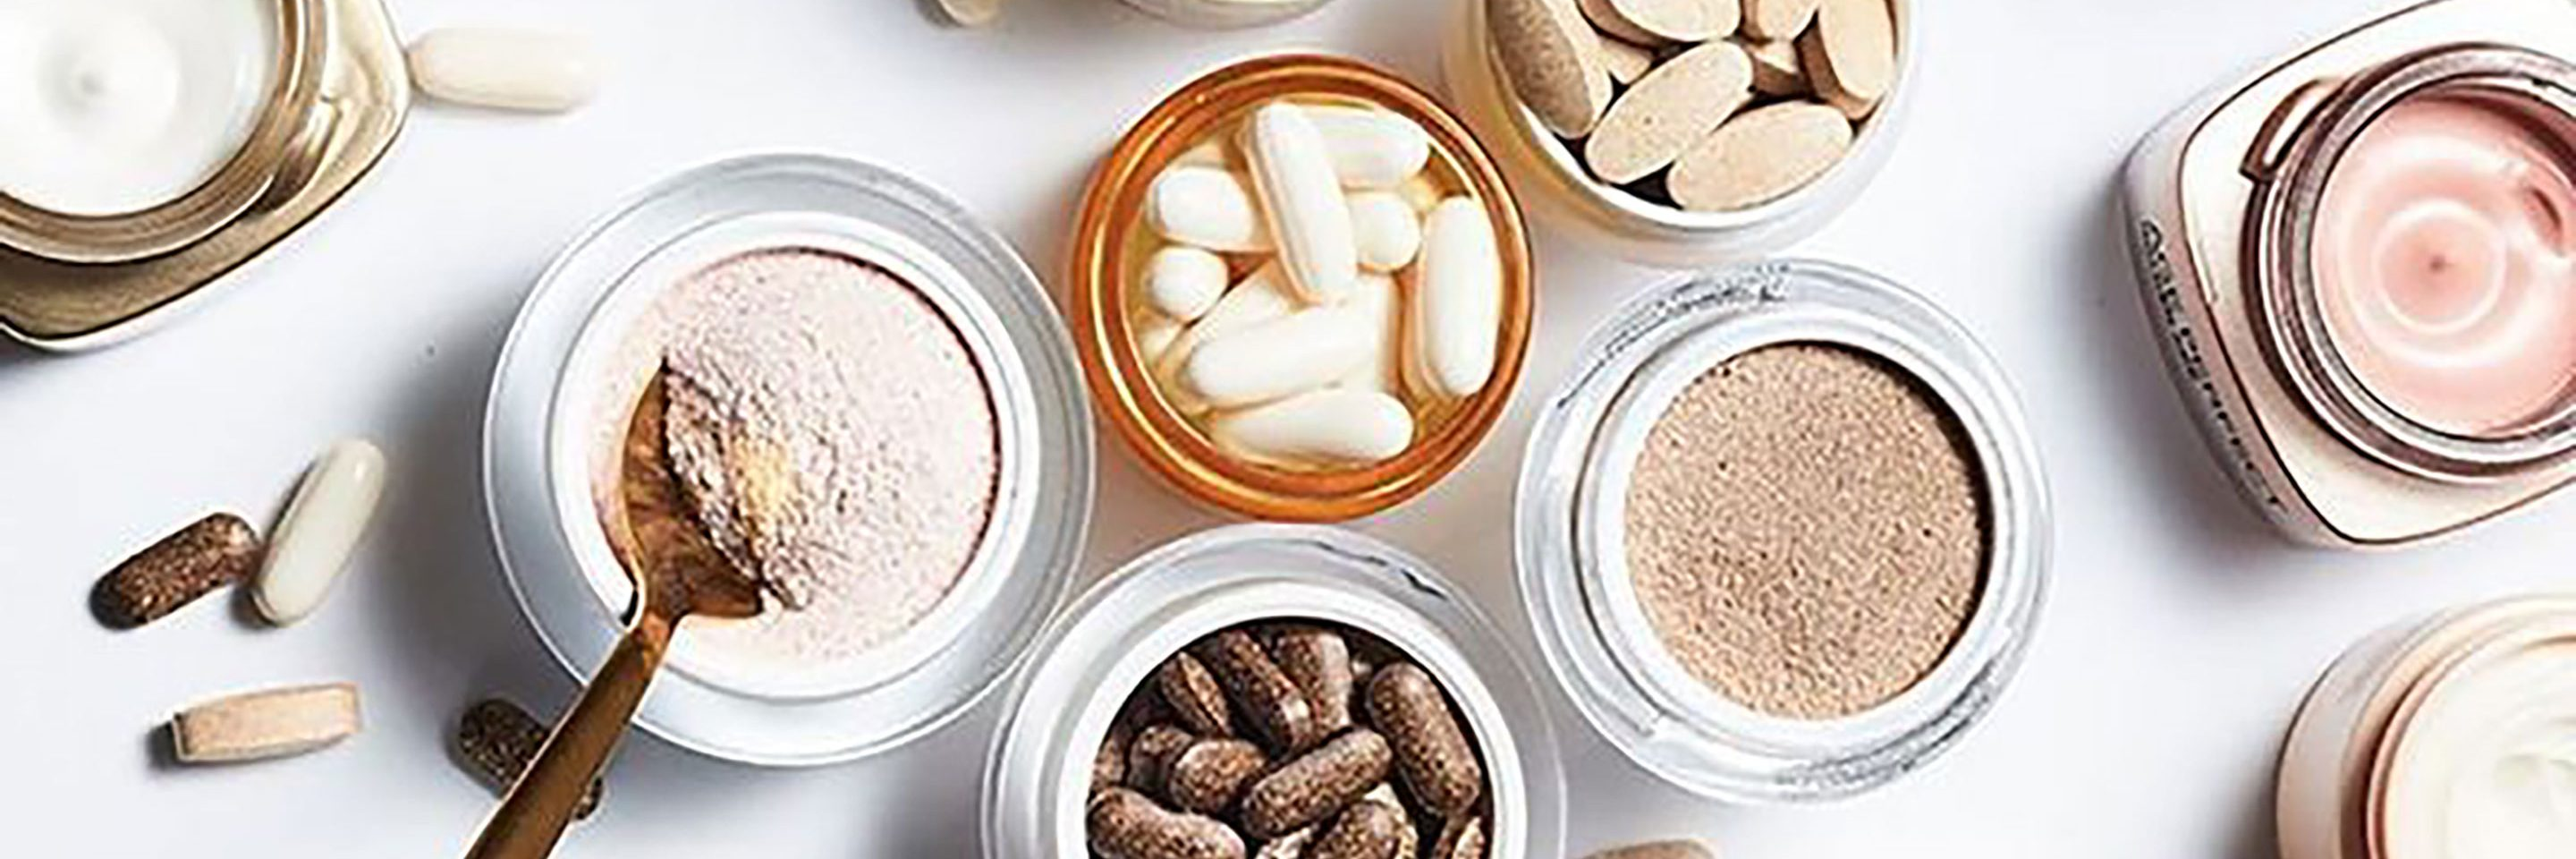 You Don't Get All Your Necessary Vitamins In Your Food